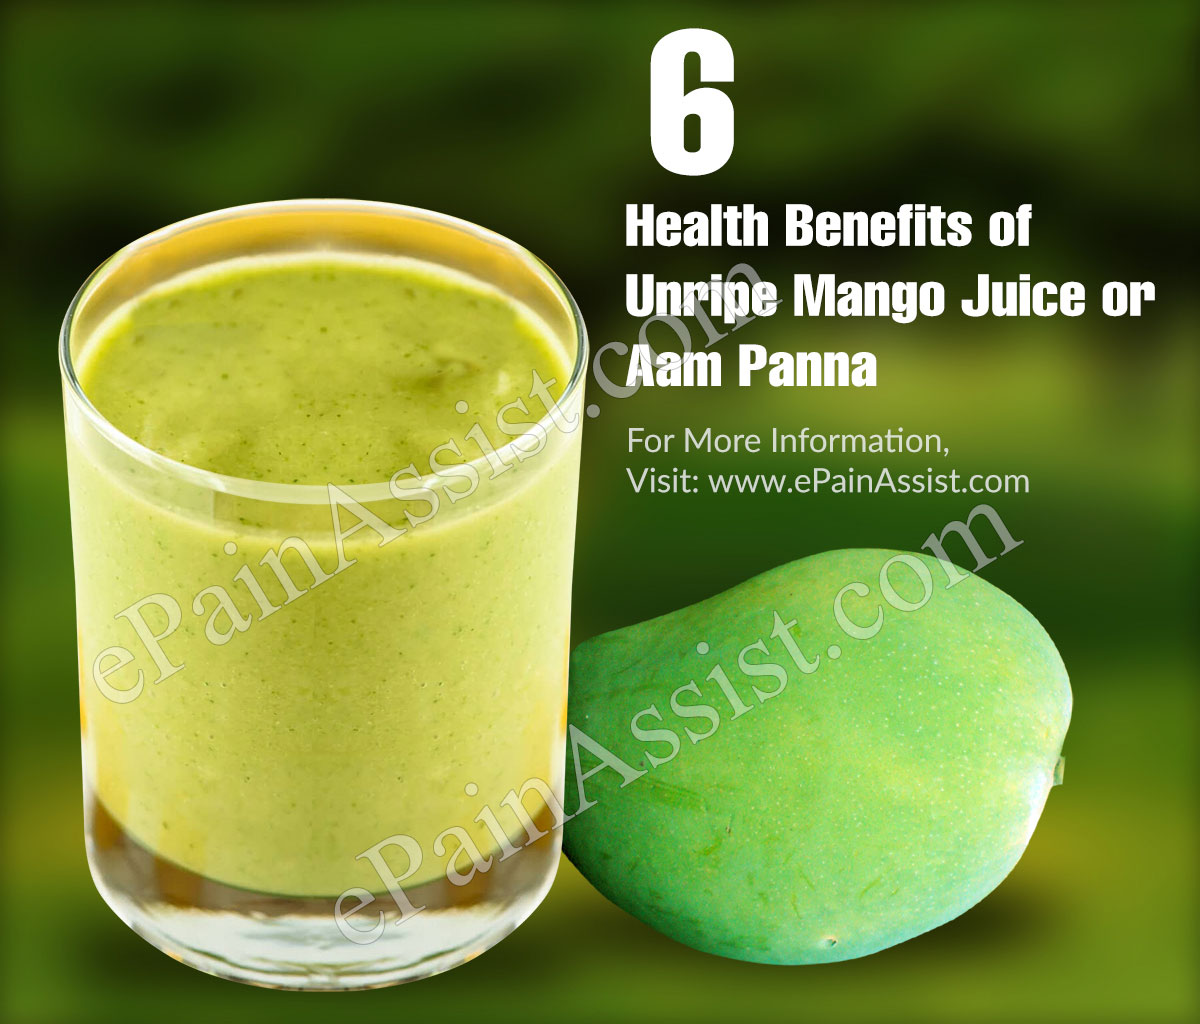 6 Health Benefits of Unripe Mango Juice or Aam Panna